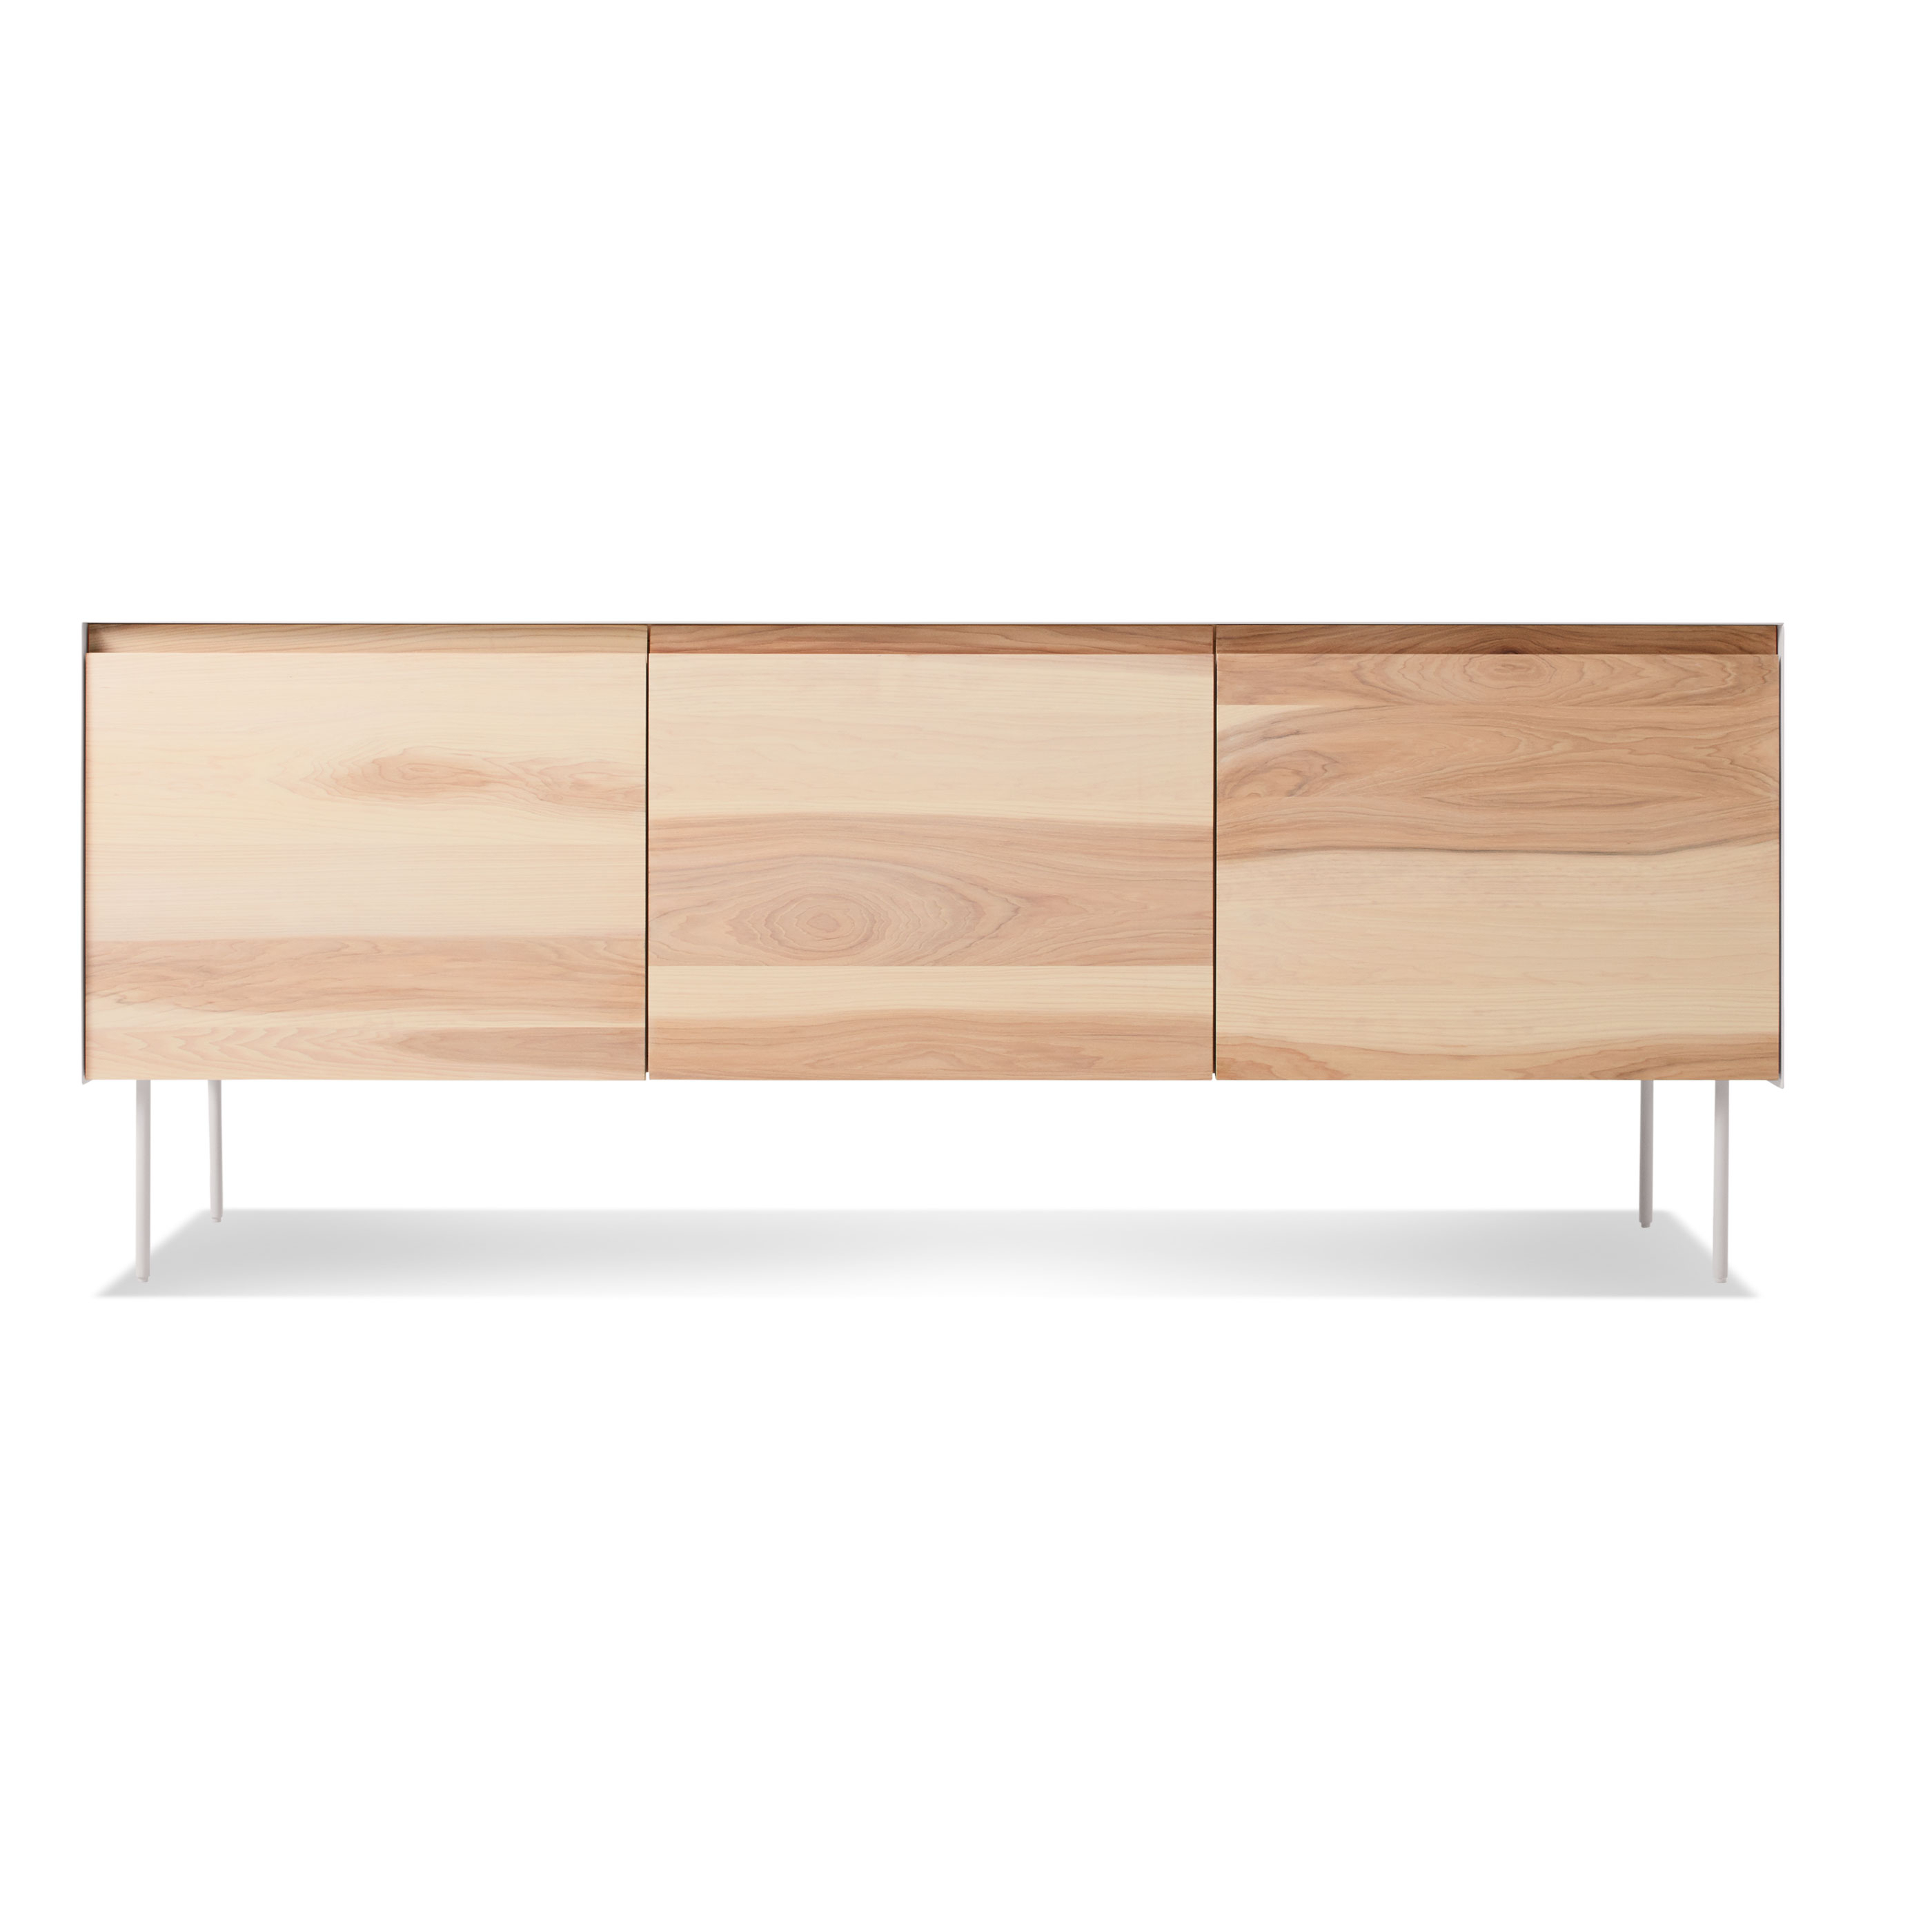 Preferred Candace Door Credenzas Pertaining To Designer Buffet Tables – Modern Buffet Tables (View 18 of 20)